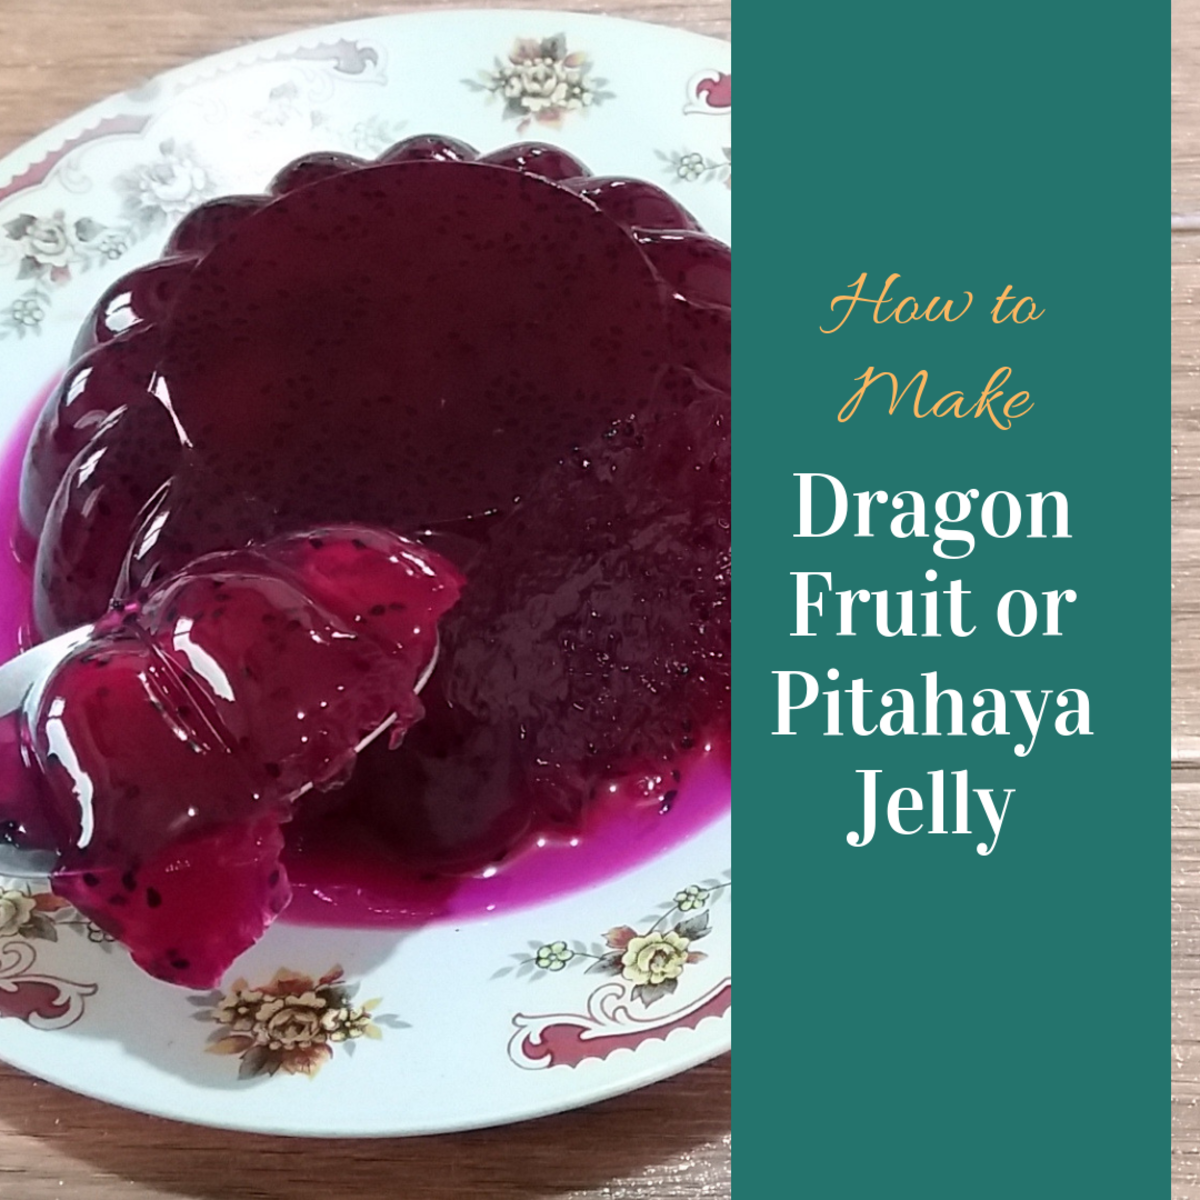 Learn how to make dragon fruit (pitahaya) jelly